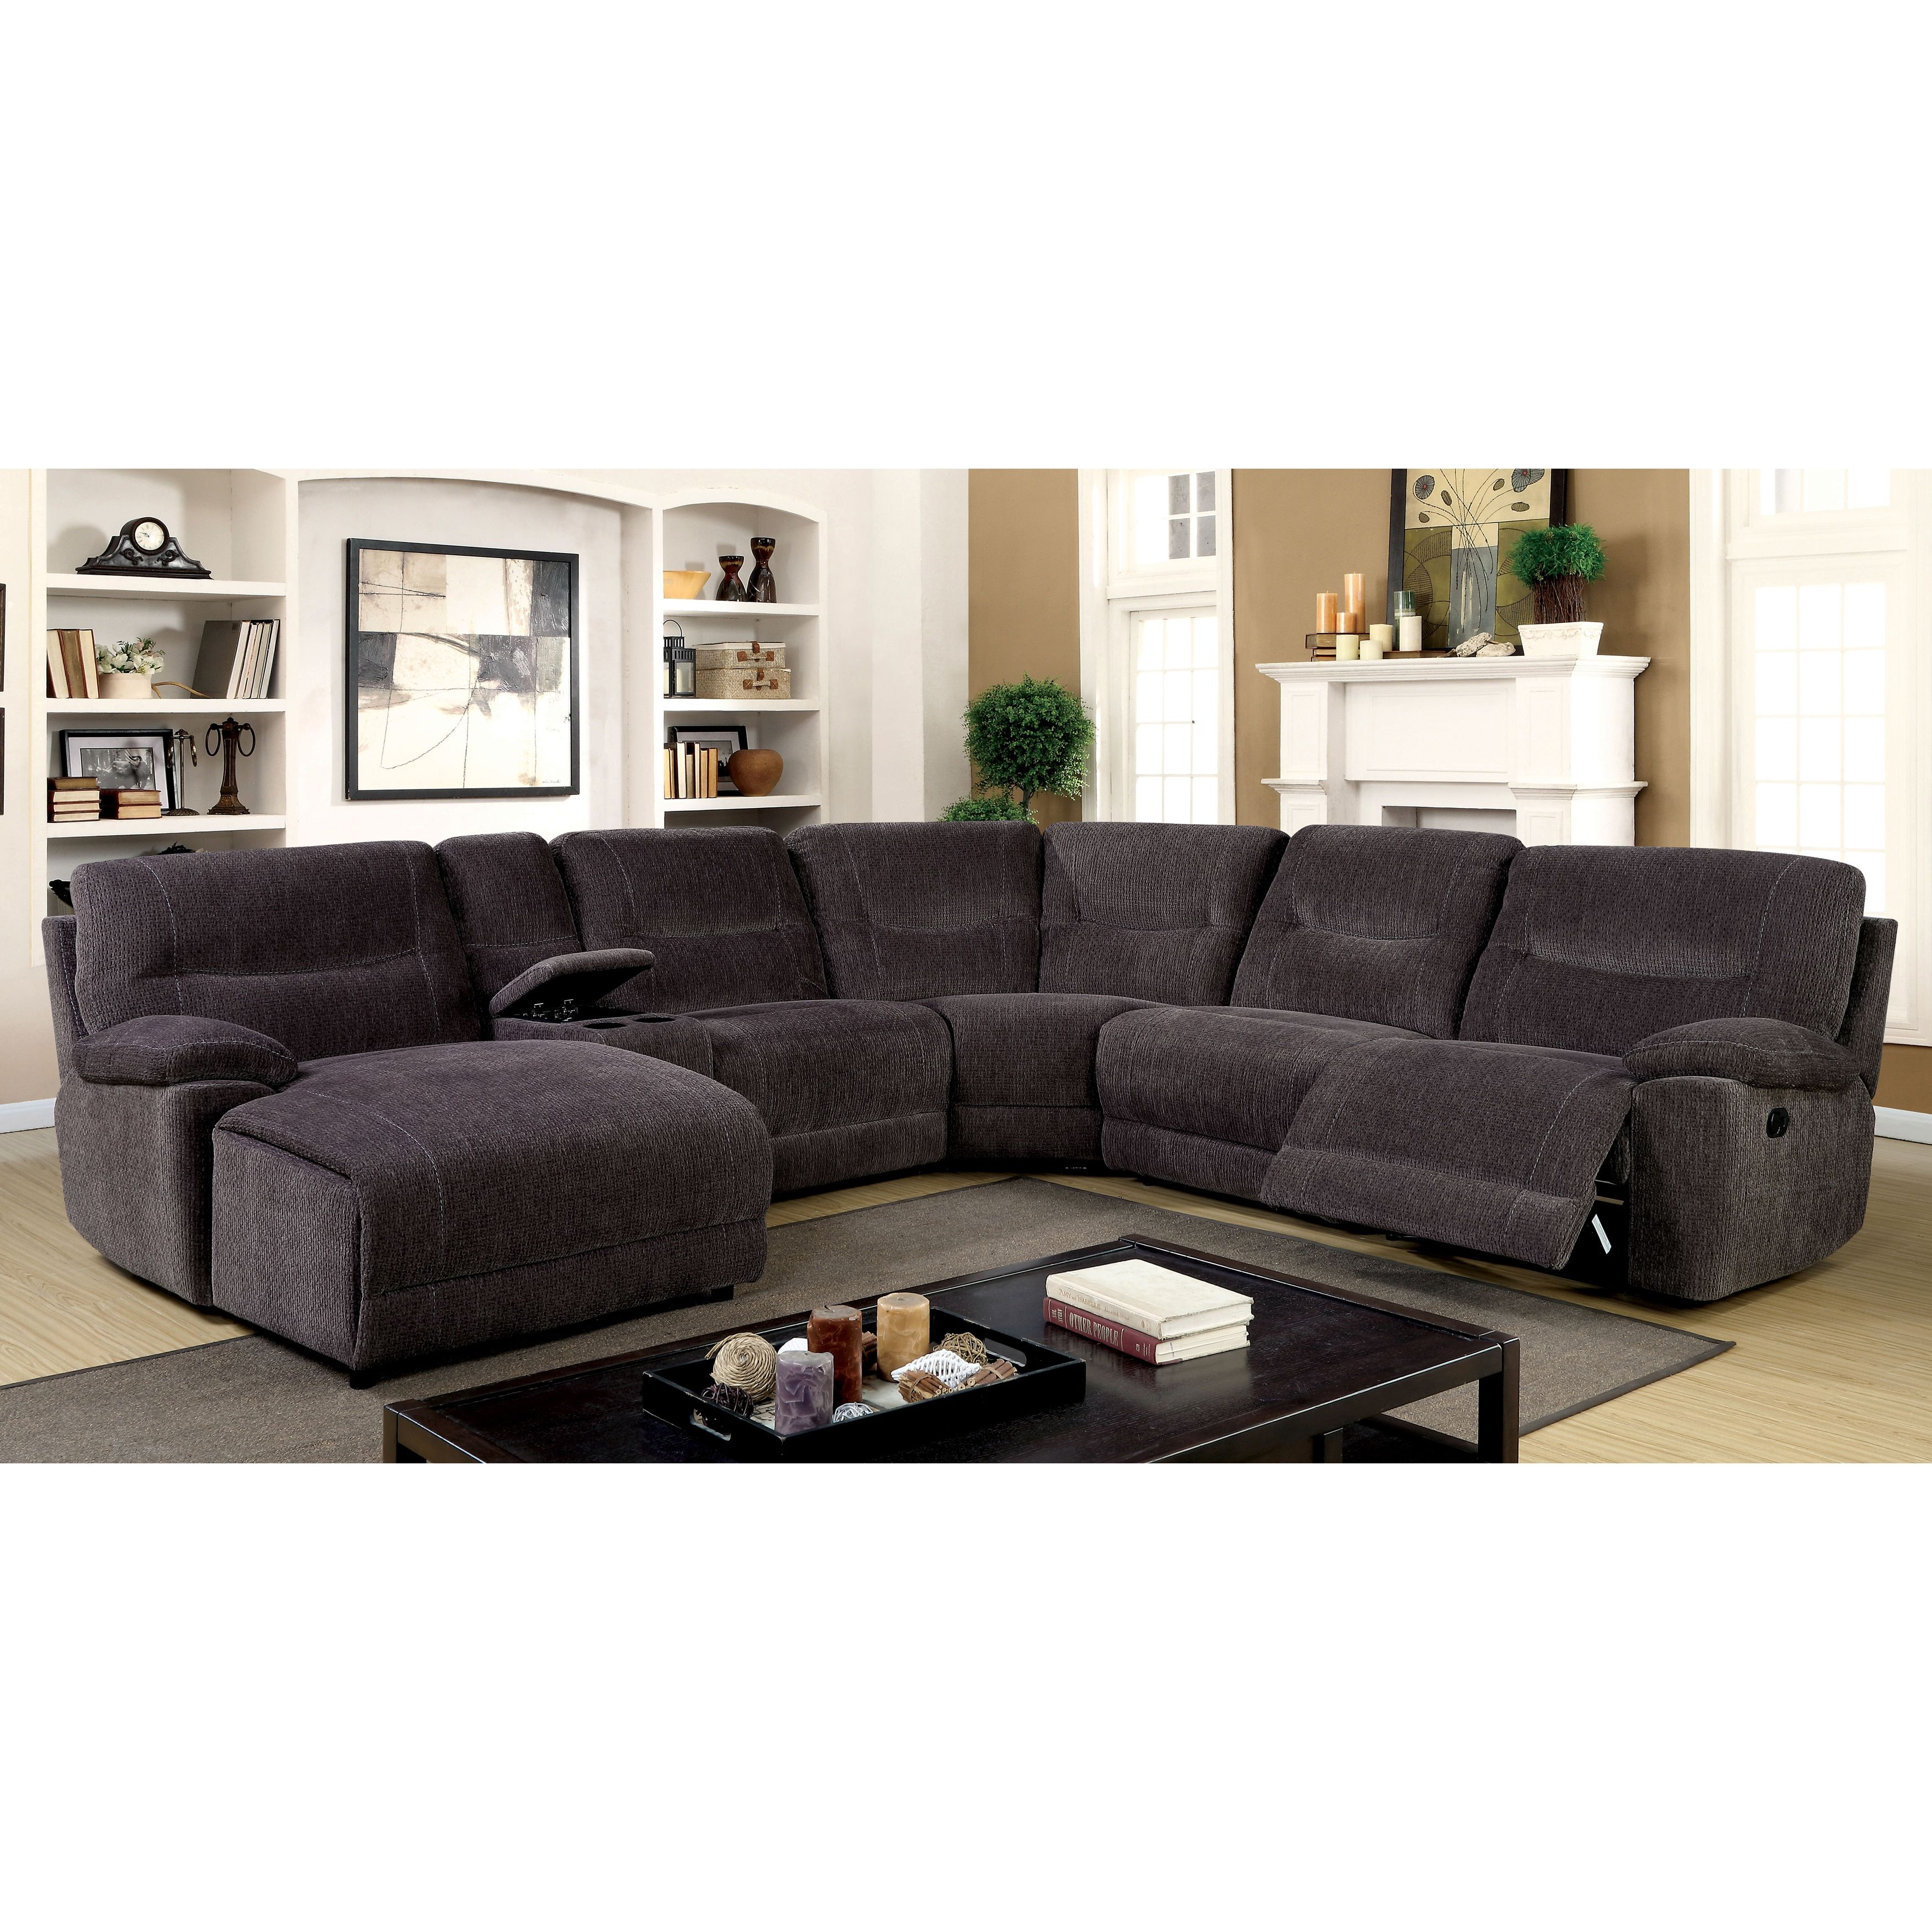 Online Shopping Bedding Furniture Electronics Jewelry Clothing More With Images Sectional Sofa With Recliner Reclining Sectional Furniture Of America